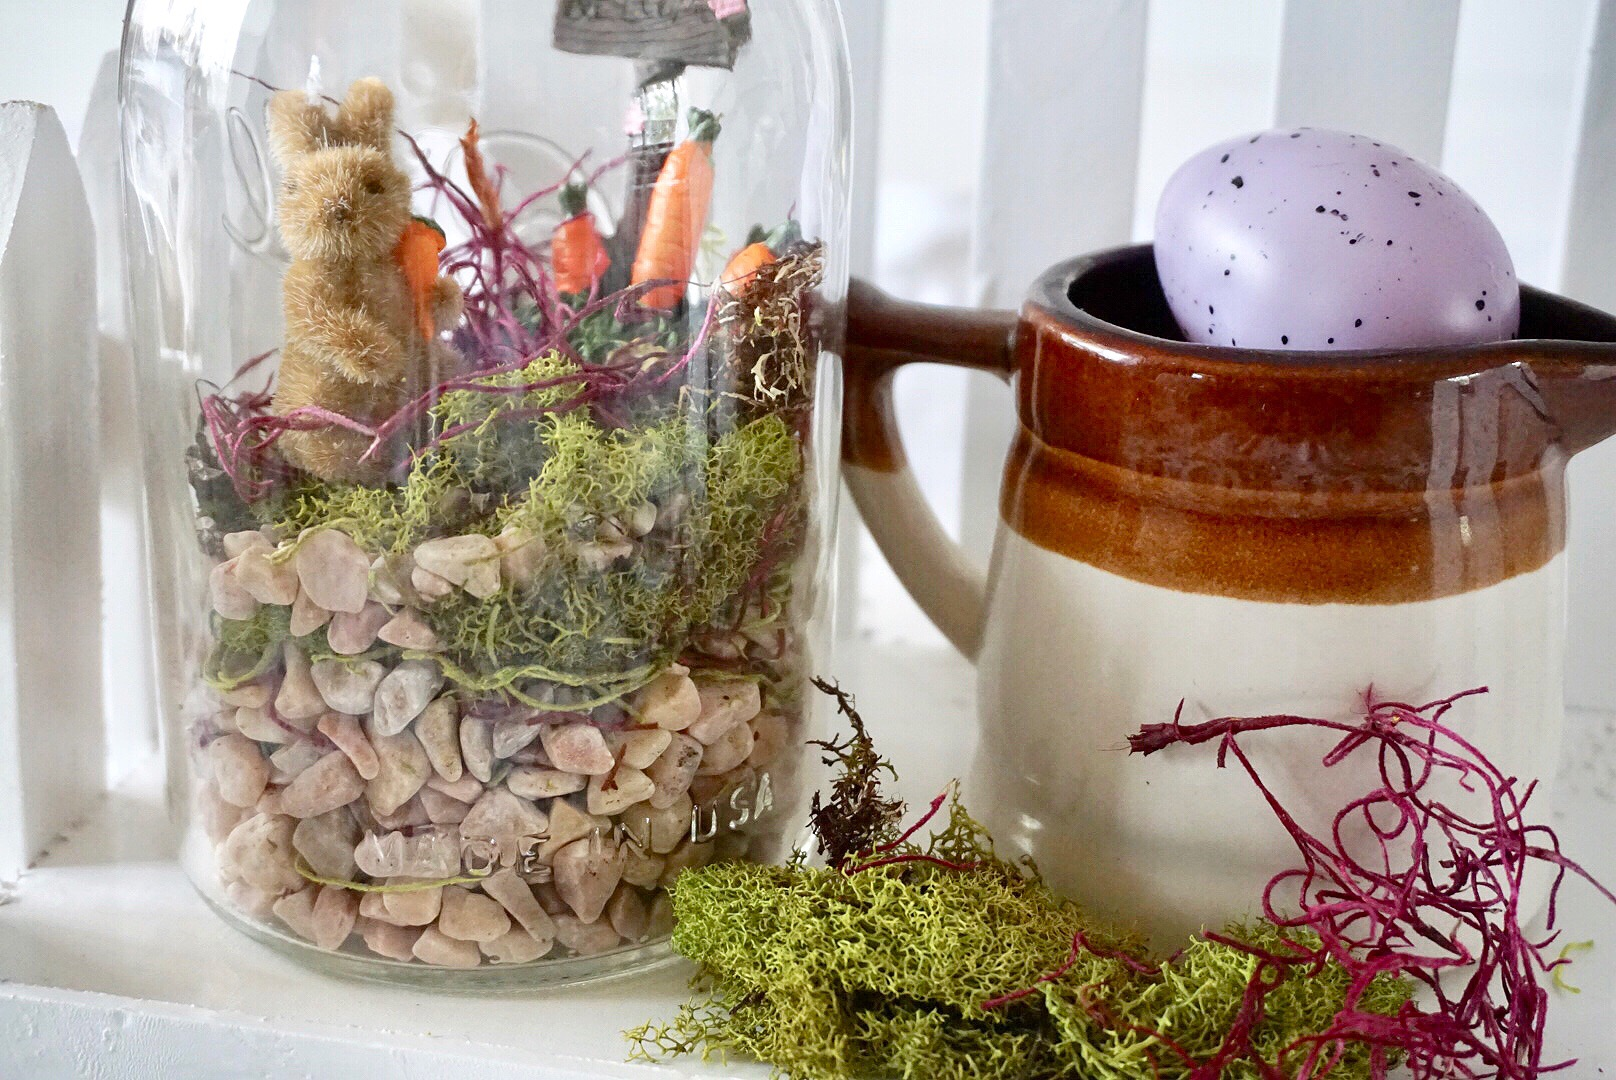 Easter themed fairy garden with bunny and carrot patch